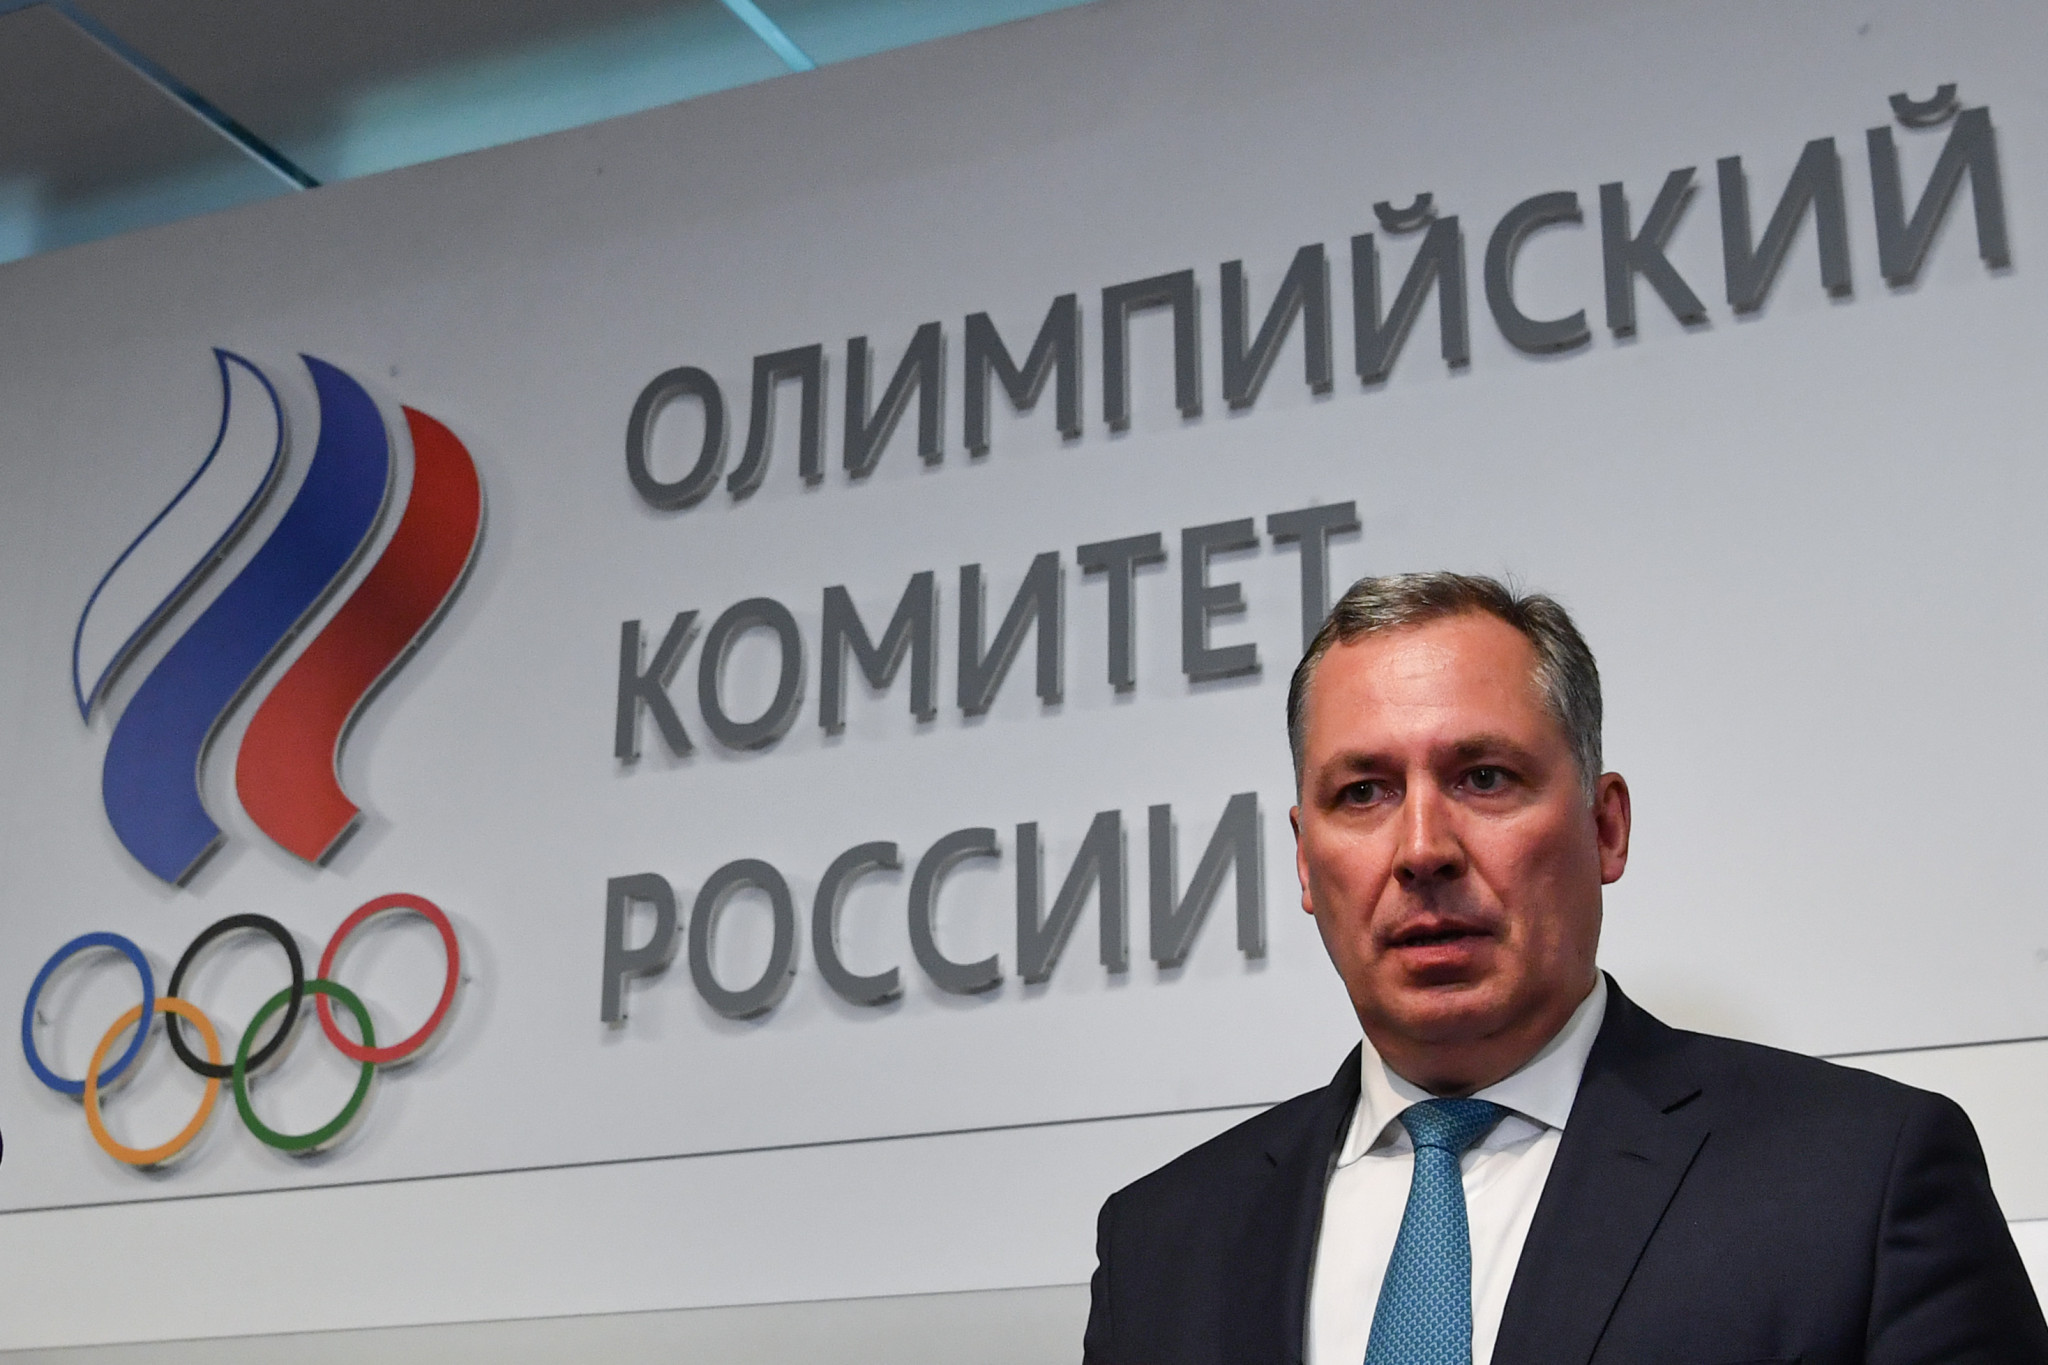 Russian Olympic Committee President becomes ex-officio member of ANOC Executive Council